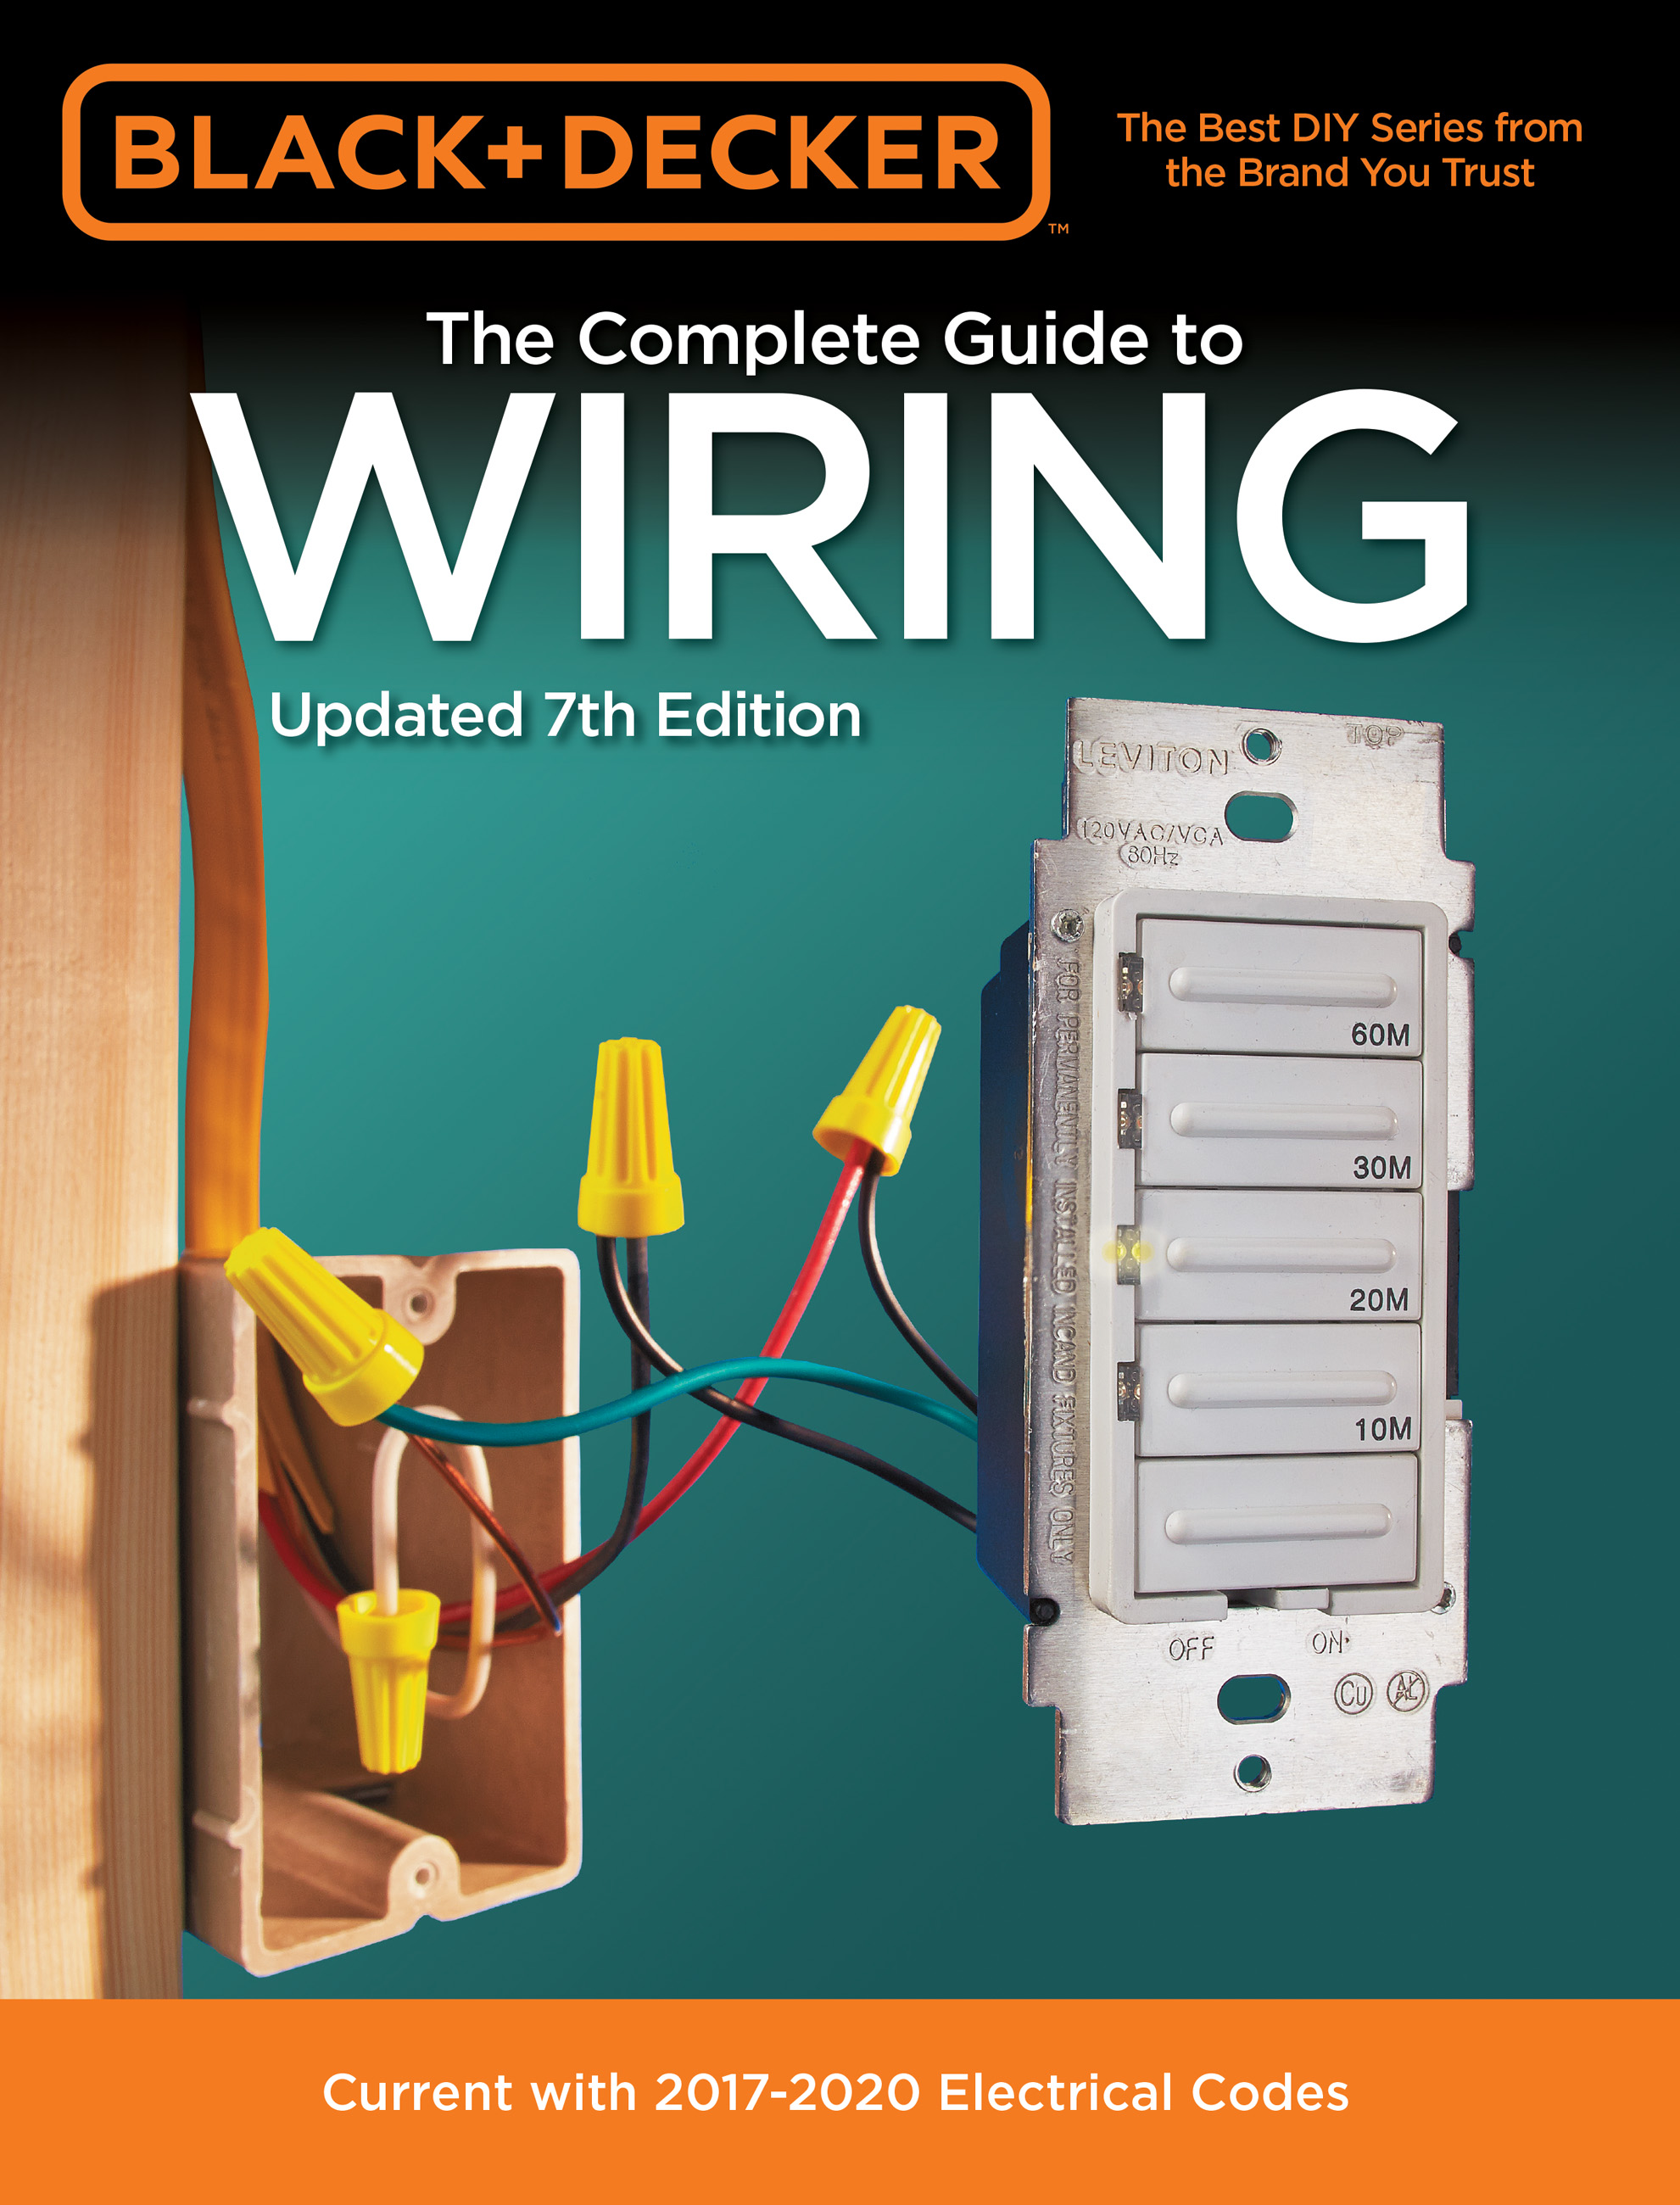 black decker advanced home wiring house home home reference auto black decker the complete guide [ 1981 x 2600 Pixel ]